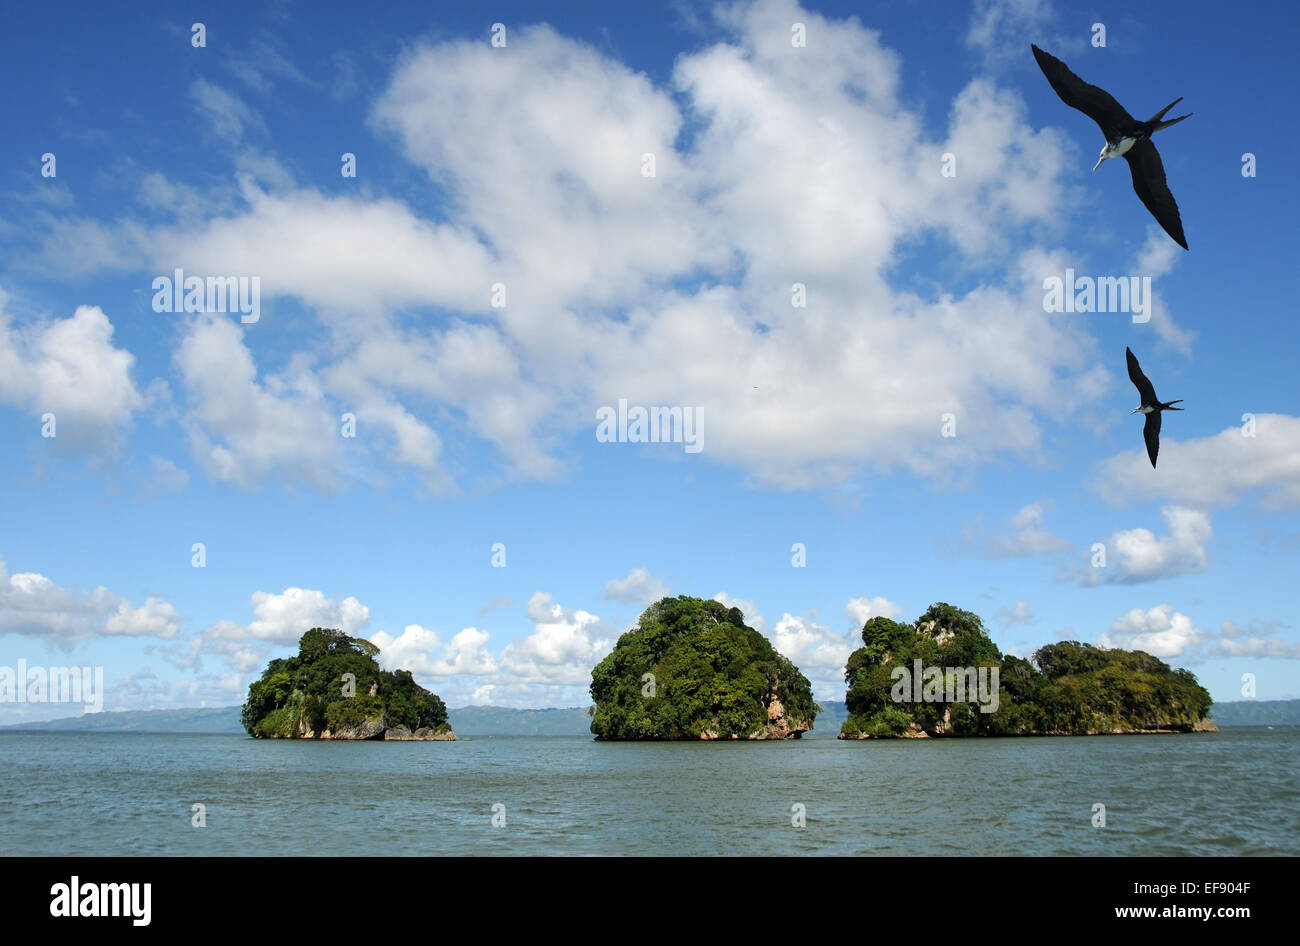 Exotic Dominican islands populated by birds - Stock Image